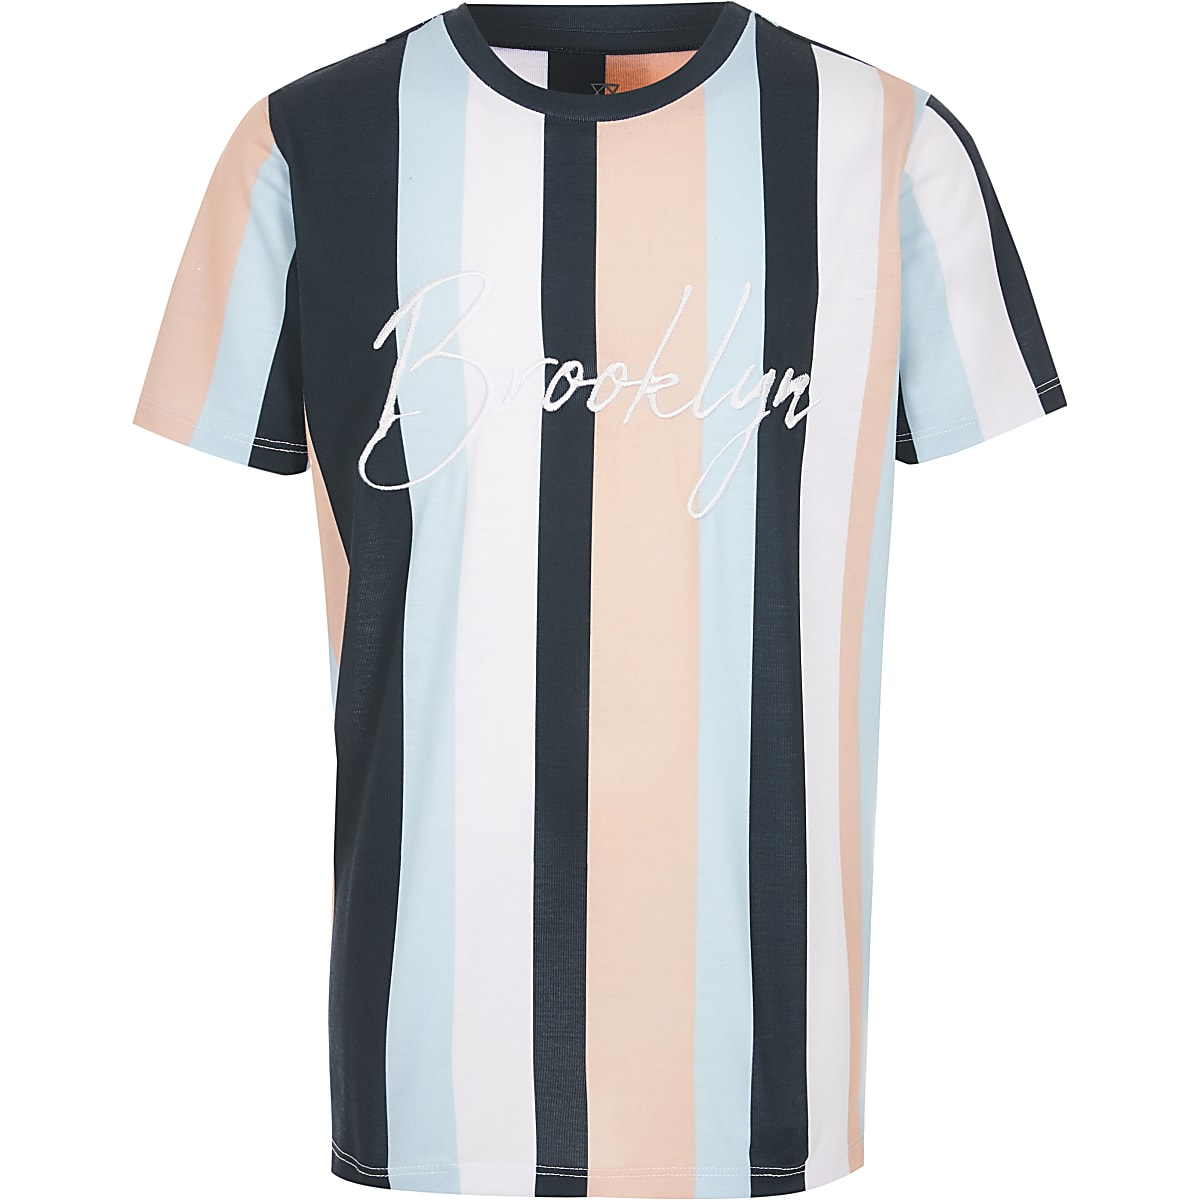 Blue stripe 'Brooklyn' T-shirt